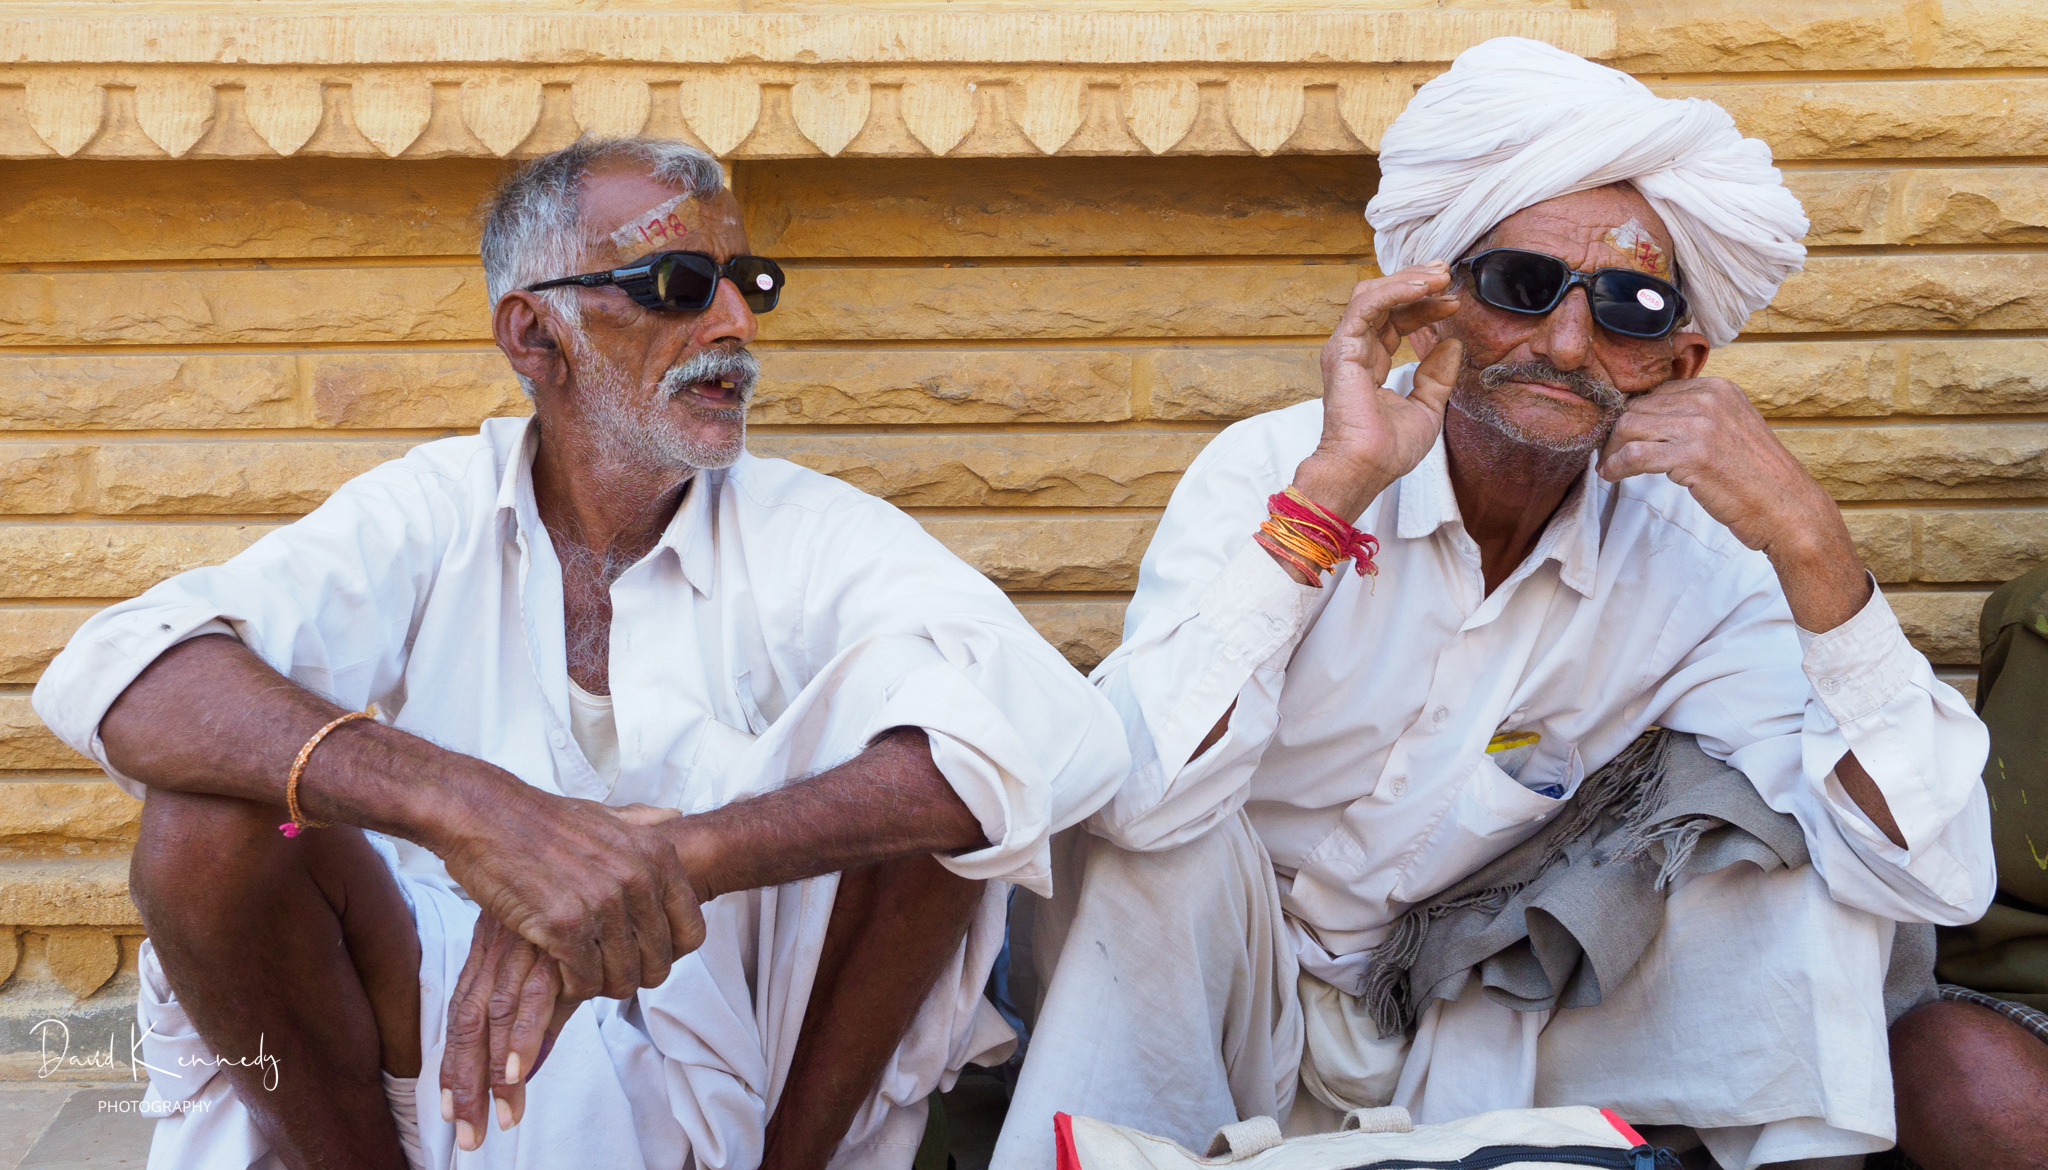 Two men waiting outside after cataract procedures to be seen again